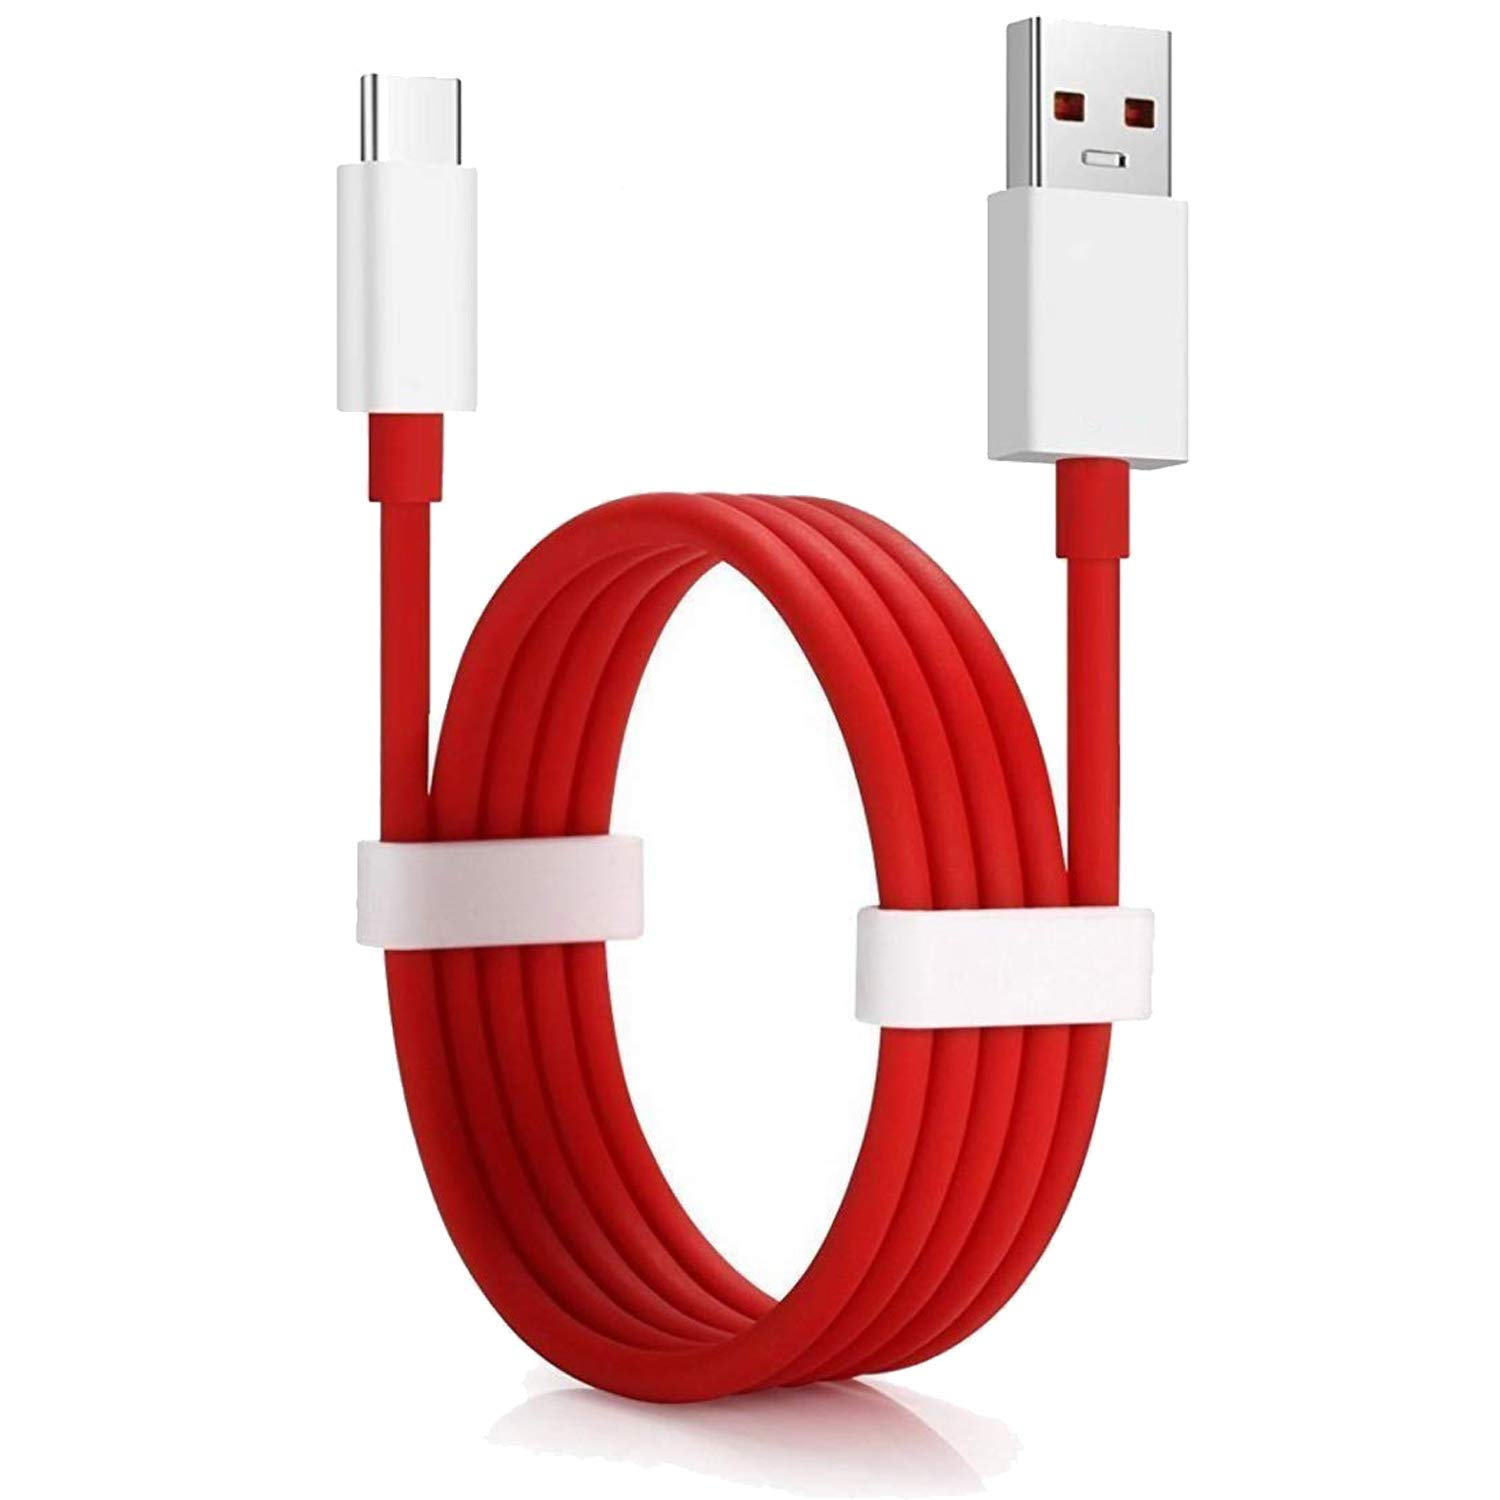 RSC POWER+ Dash Data Sync Fast Charging Cable Supported for